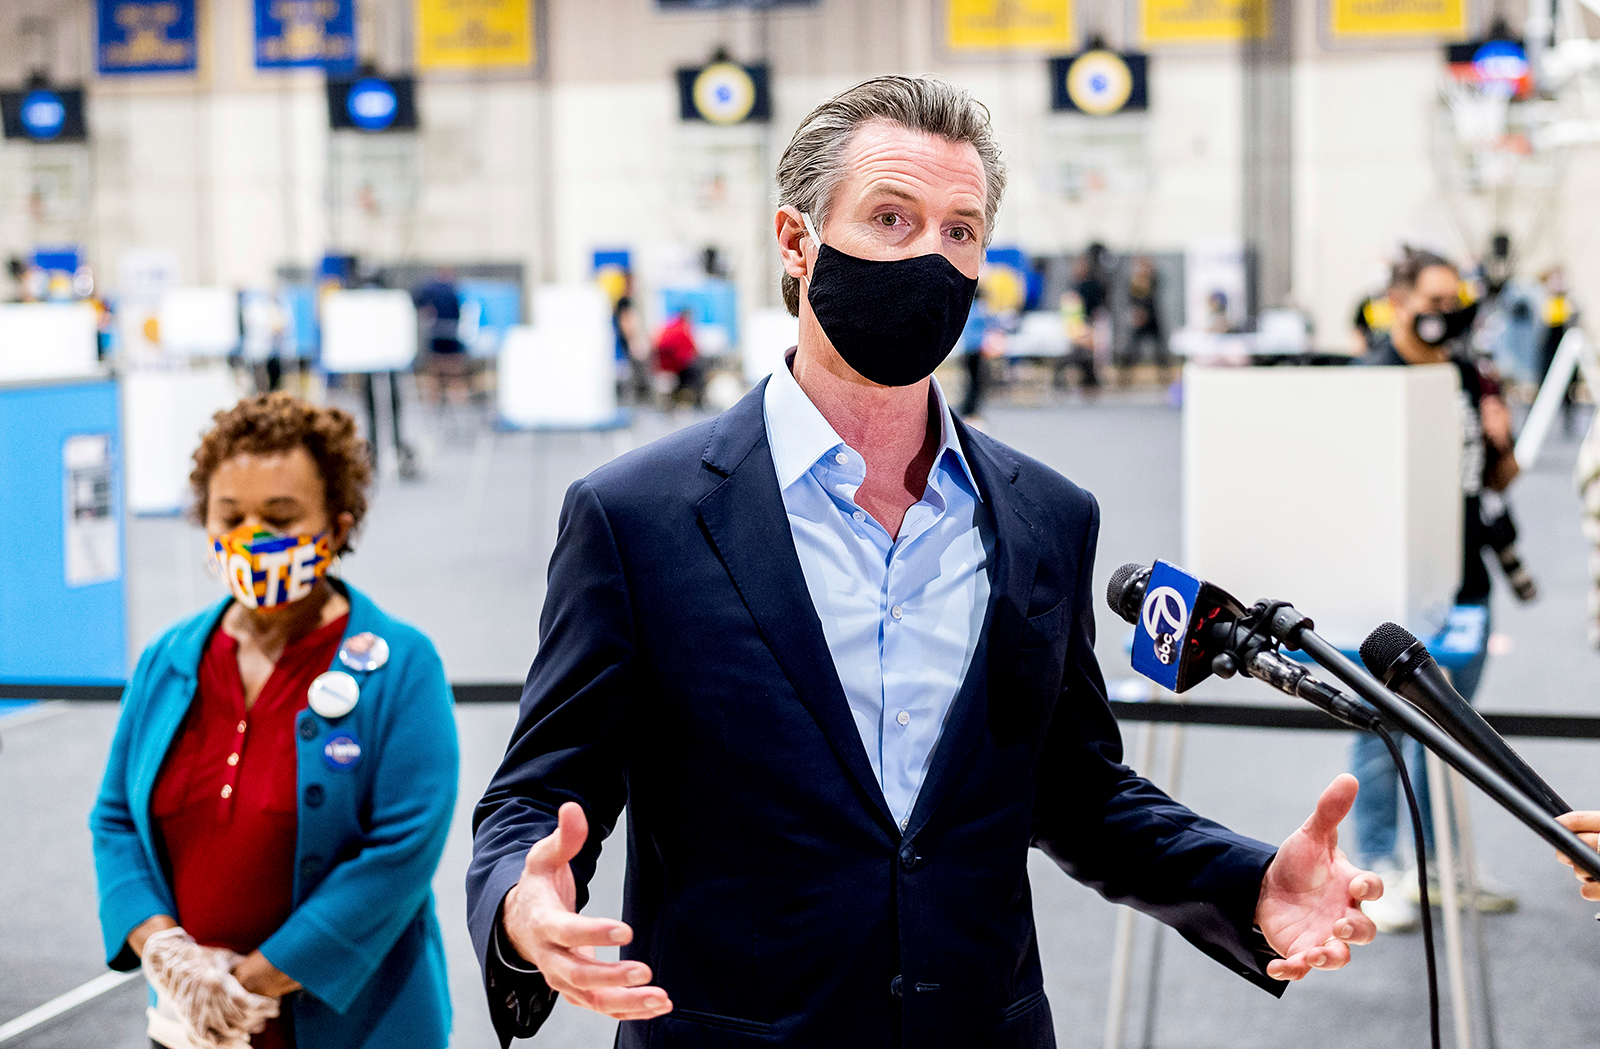 Gov. Gavin Newsom discusses the 2020 election while visiting the Golden State Warriors training facility, which is serving as a polling location, on Tuesday, Nov. 3, in Oakland, Calif.